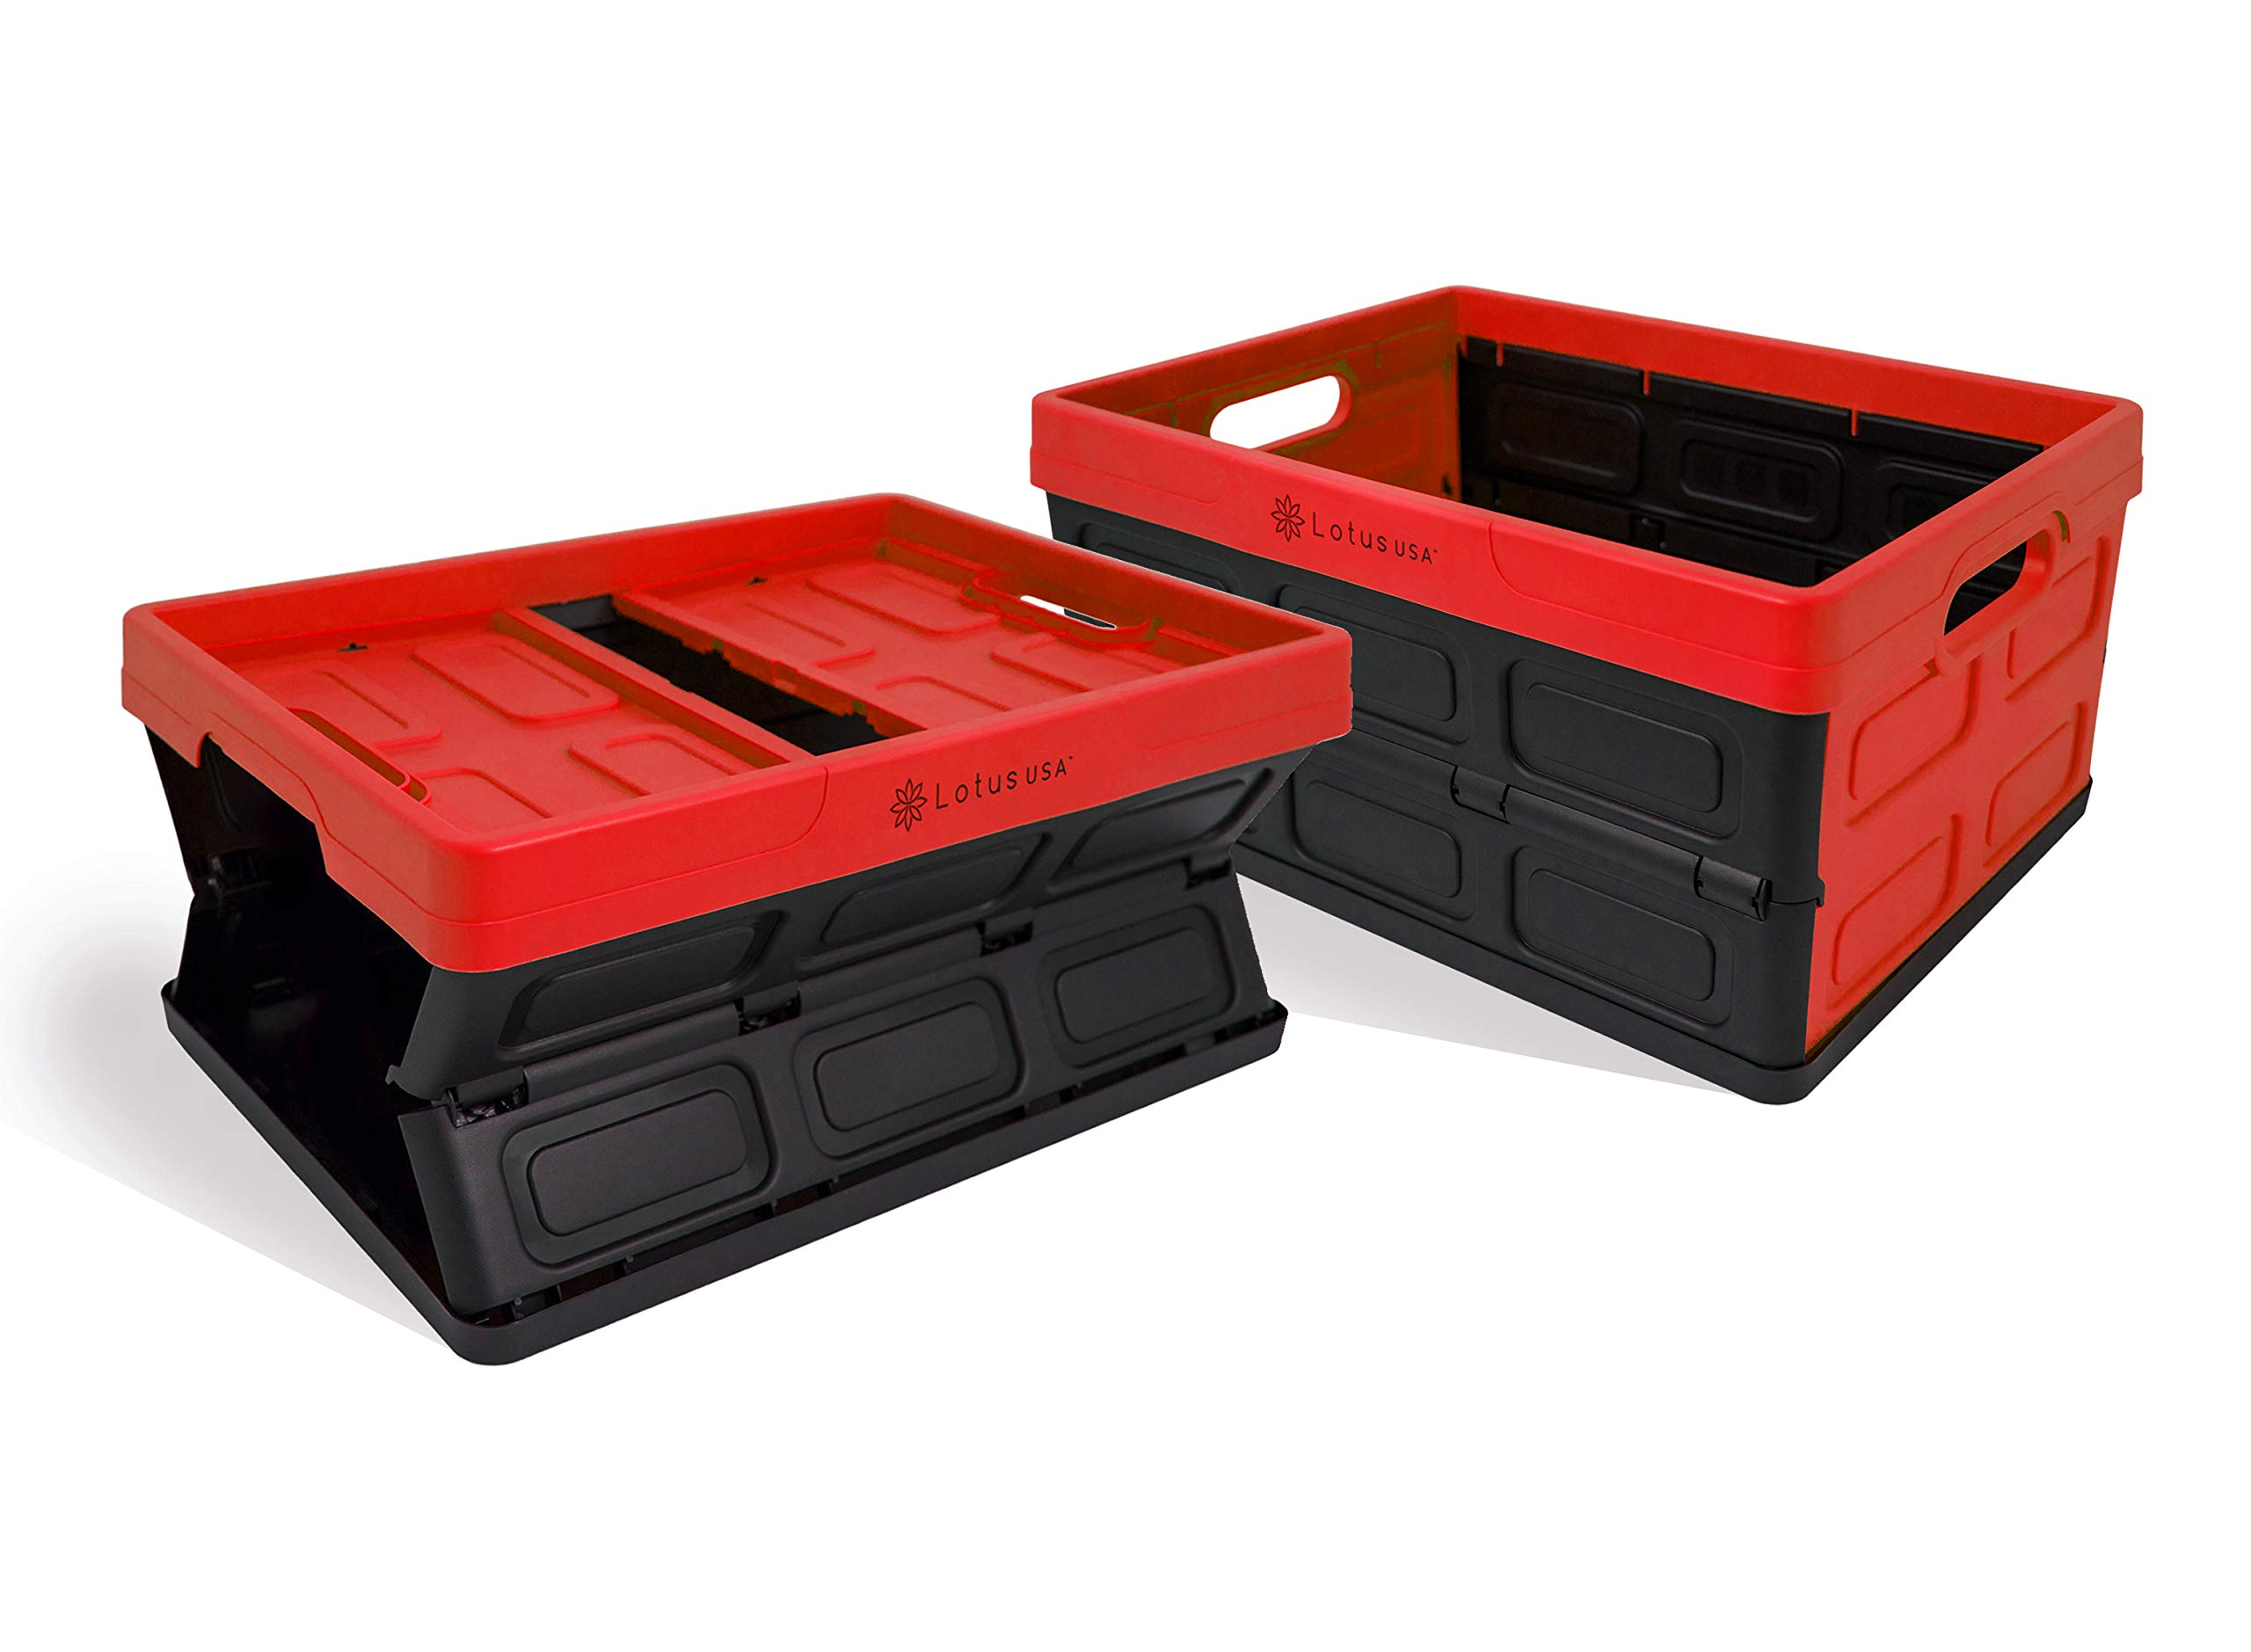 Lotus USA Fold-It Foldable Stackable Hardside Storage Crate, 33 Quart (Red, 2-Pack) by Fold-It